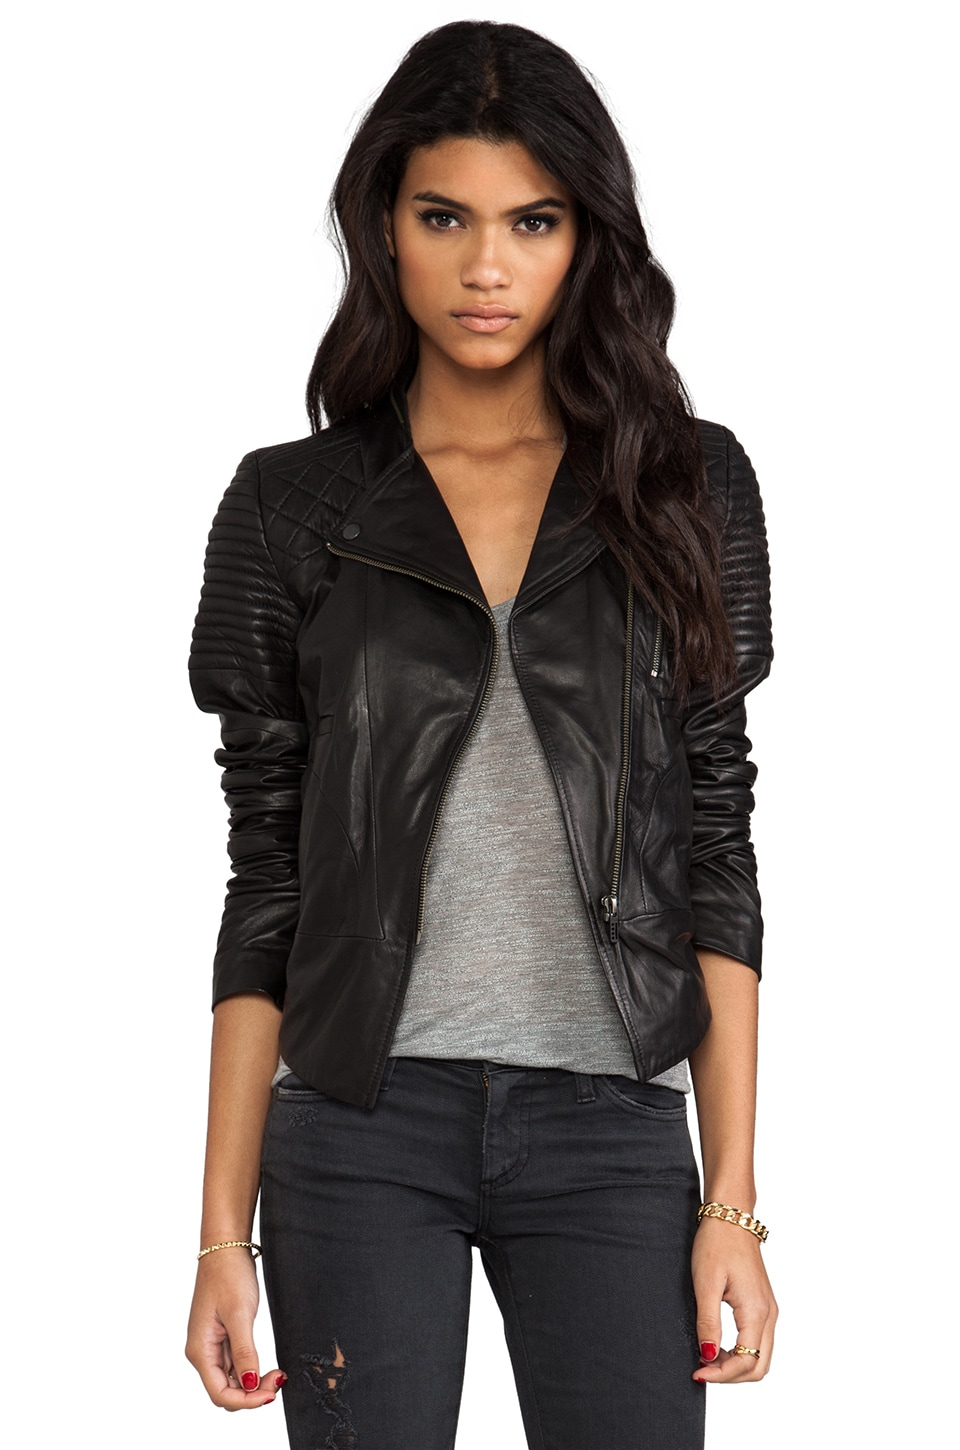 Francis Leon The Avenger Jacket in Black